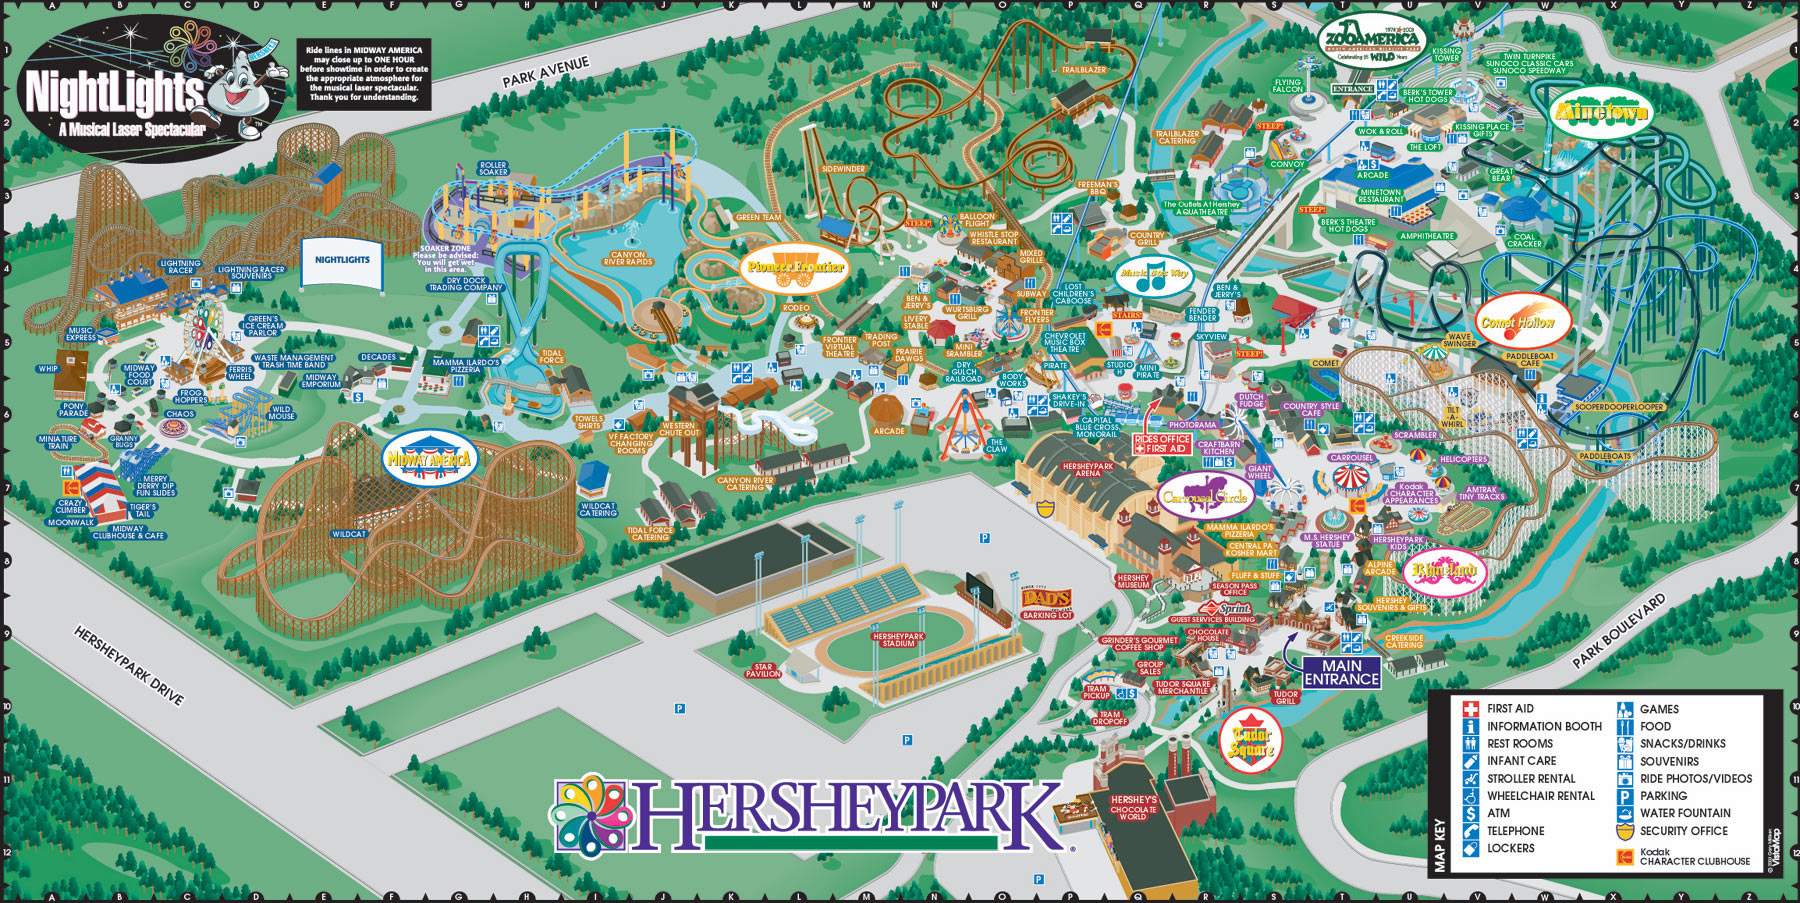 Hersheypark And Food Allergies Best Allergy Sites